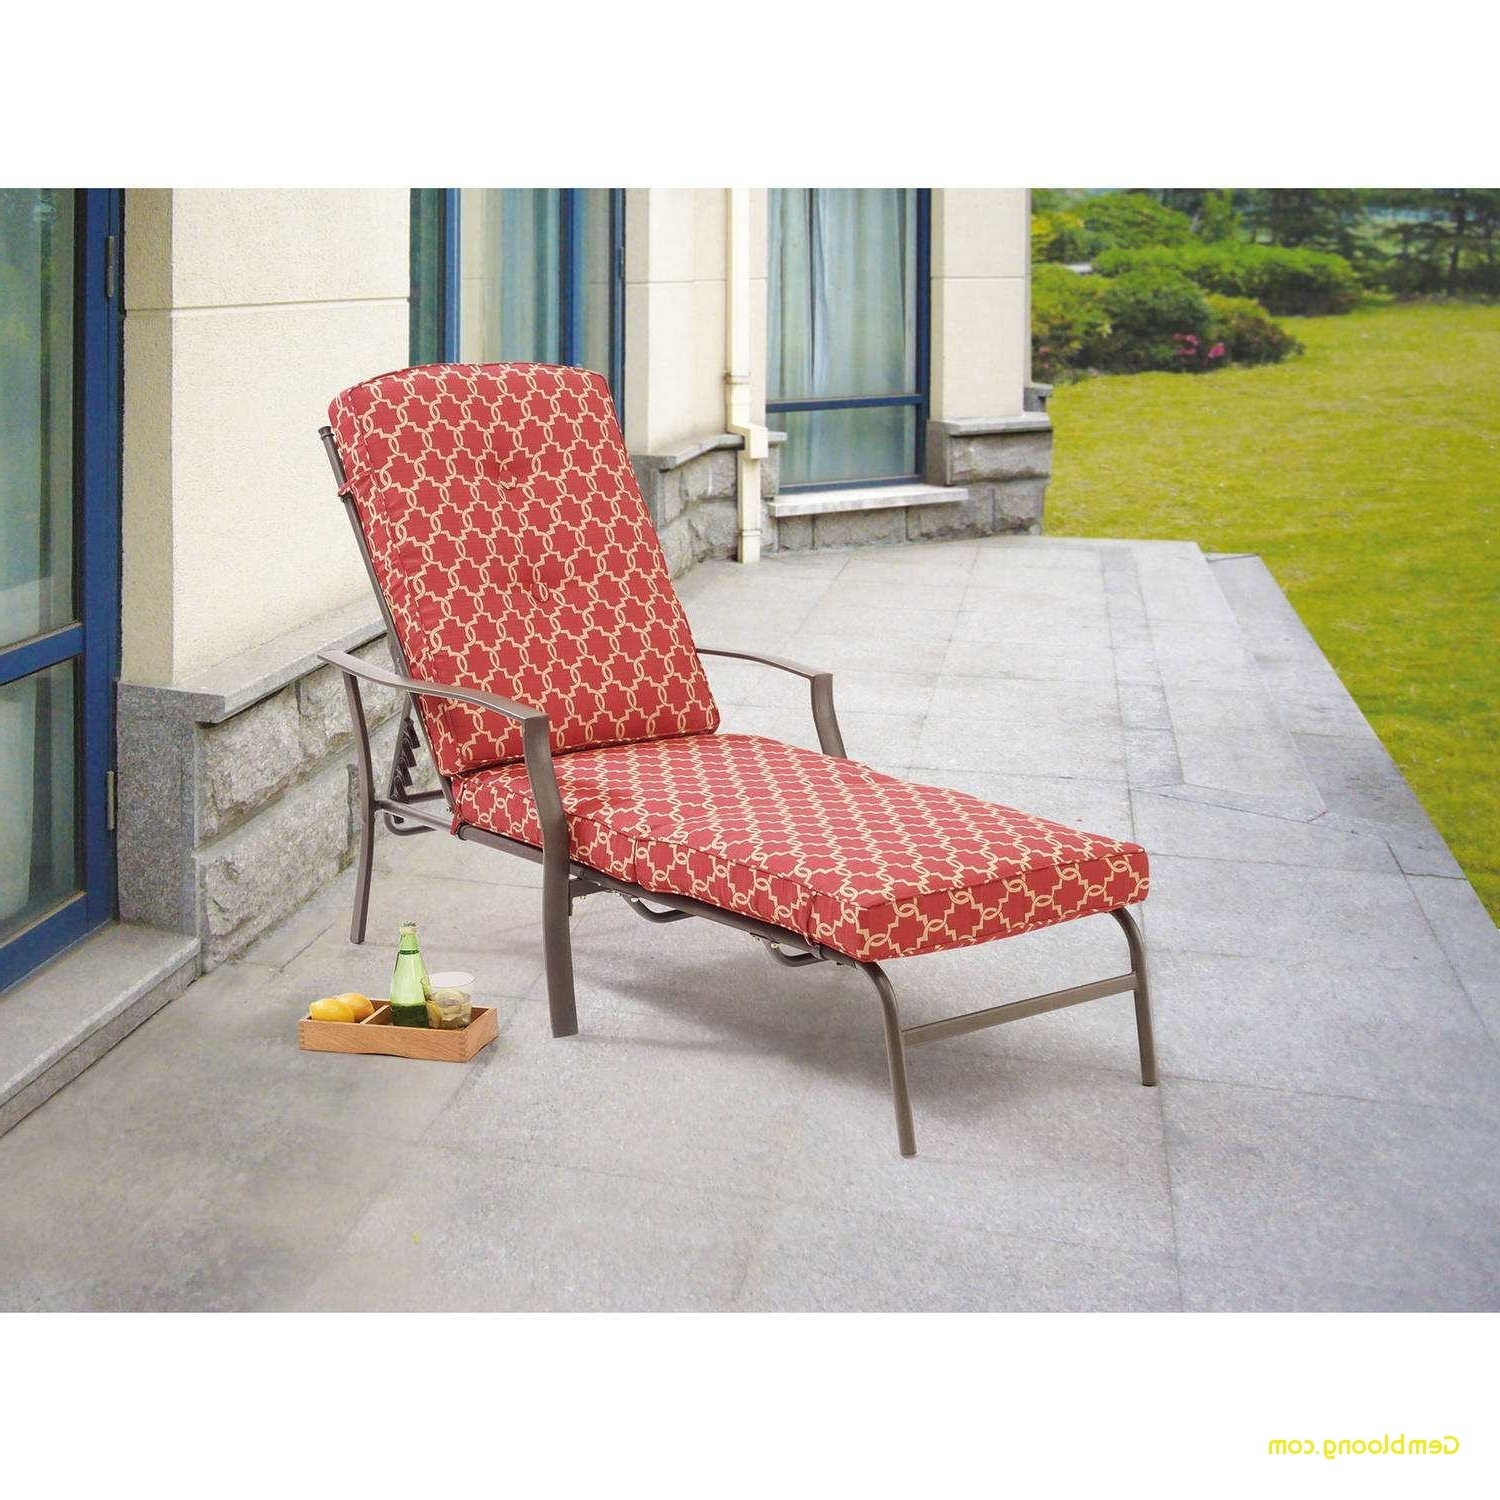 Latest Chair Cheap Outdoor Lounge Chairs Walmart Within Patio Chaise For Walmart Chaise Lounge Chairs (View 3 of 15)